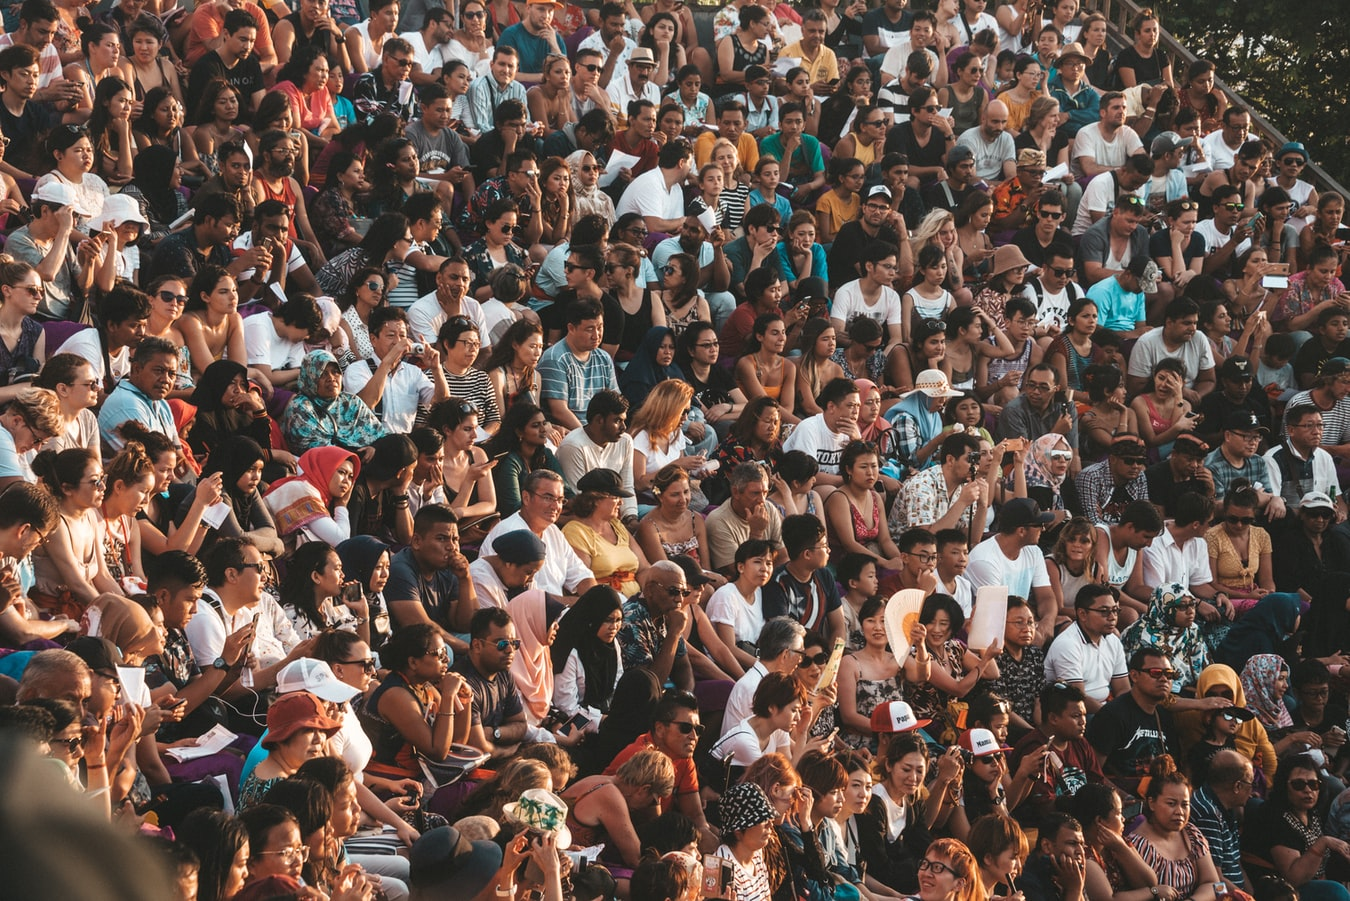 A large crowd of people sitting in raked seating.